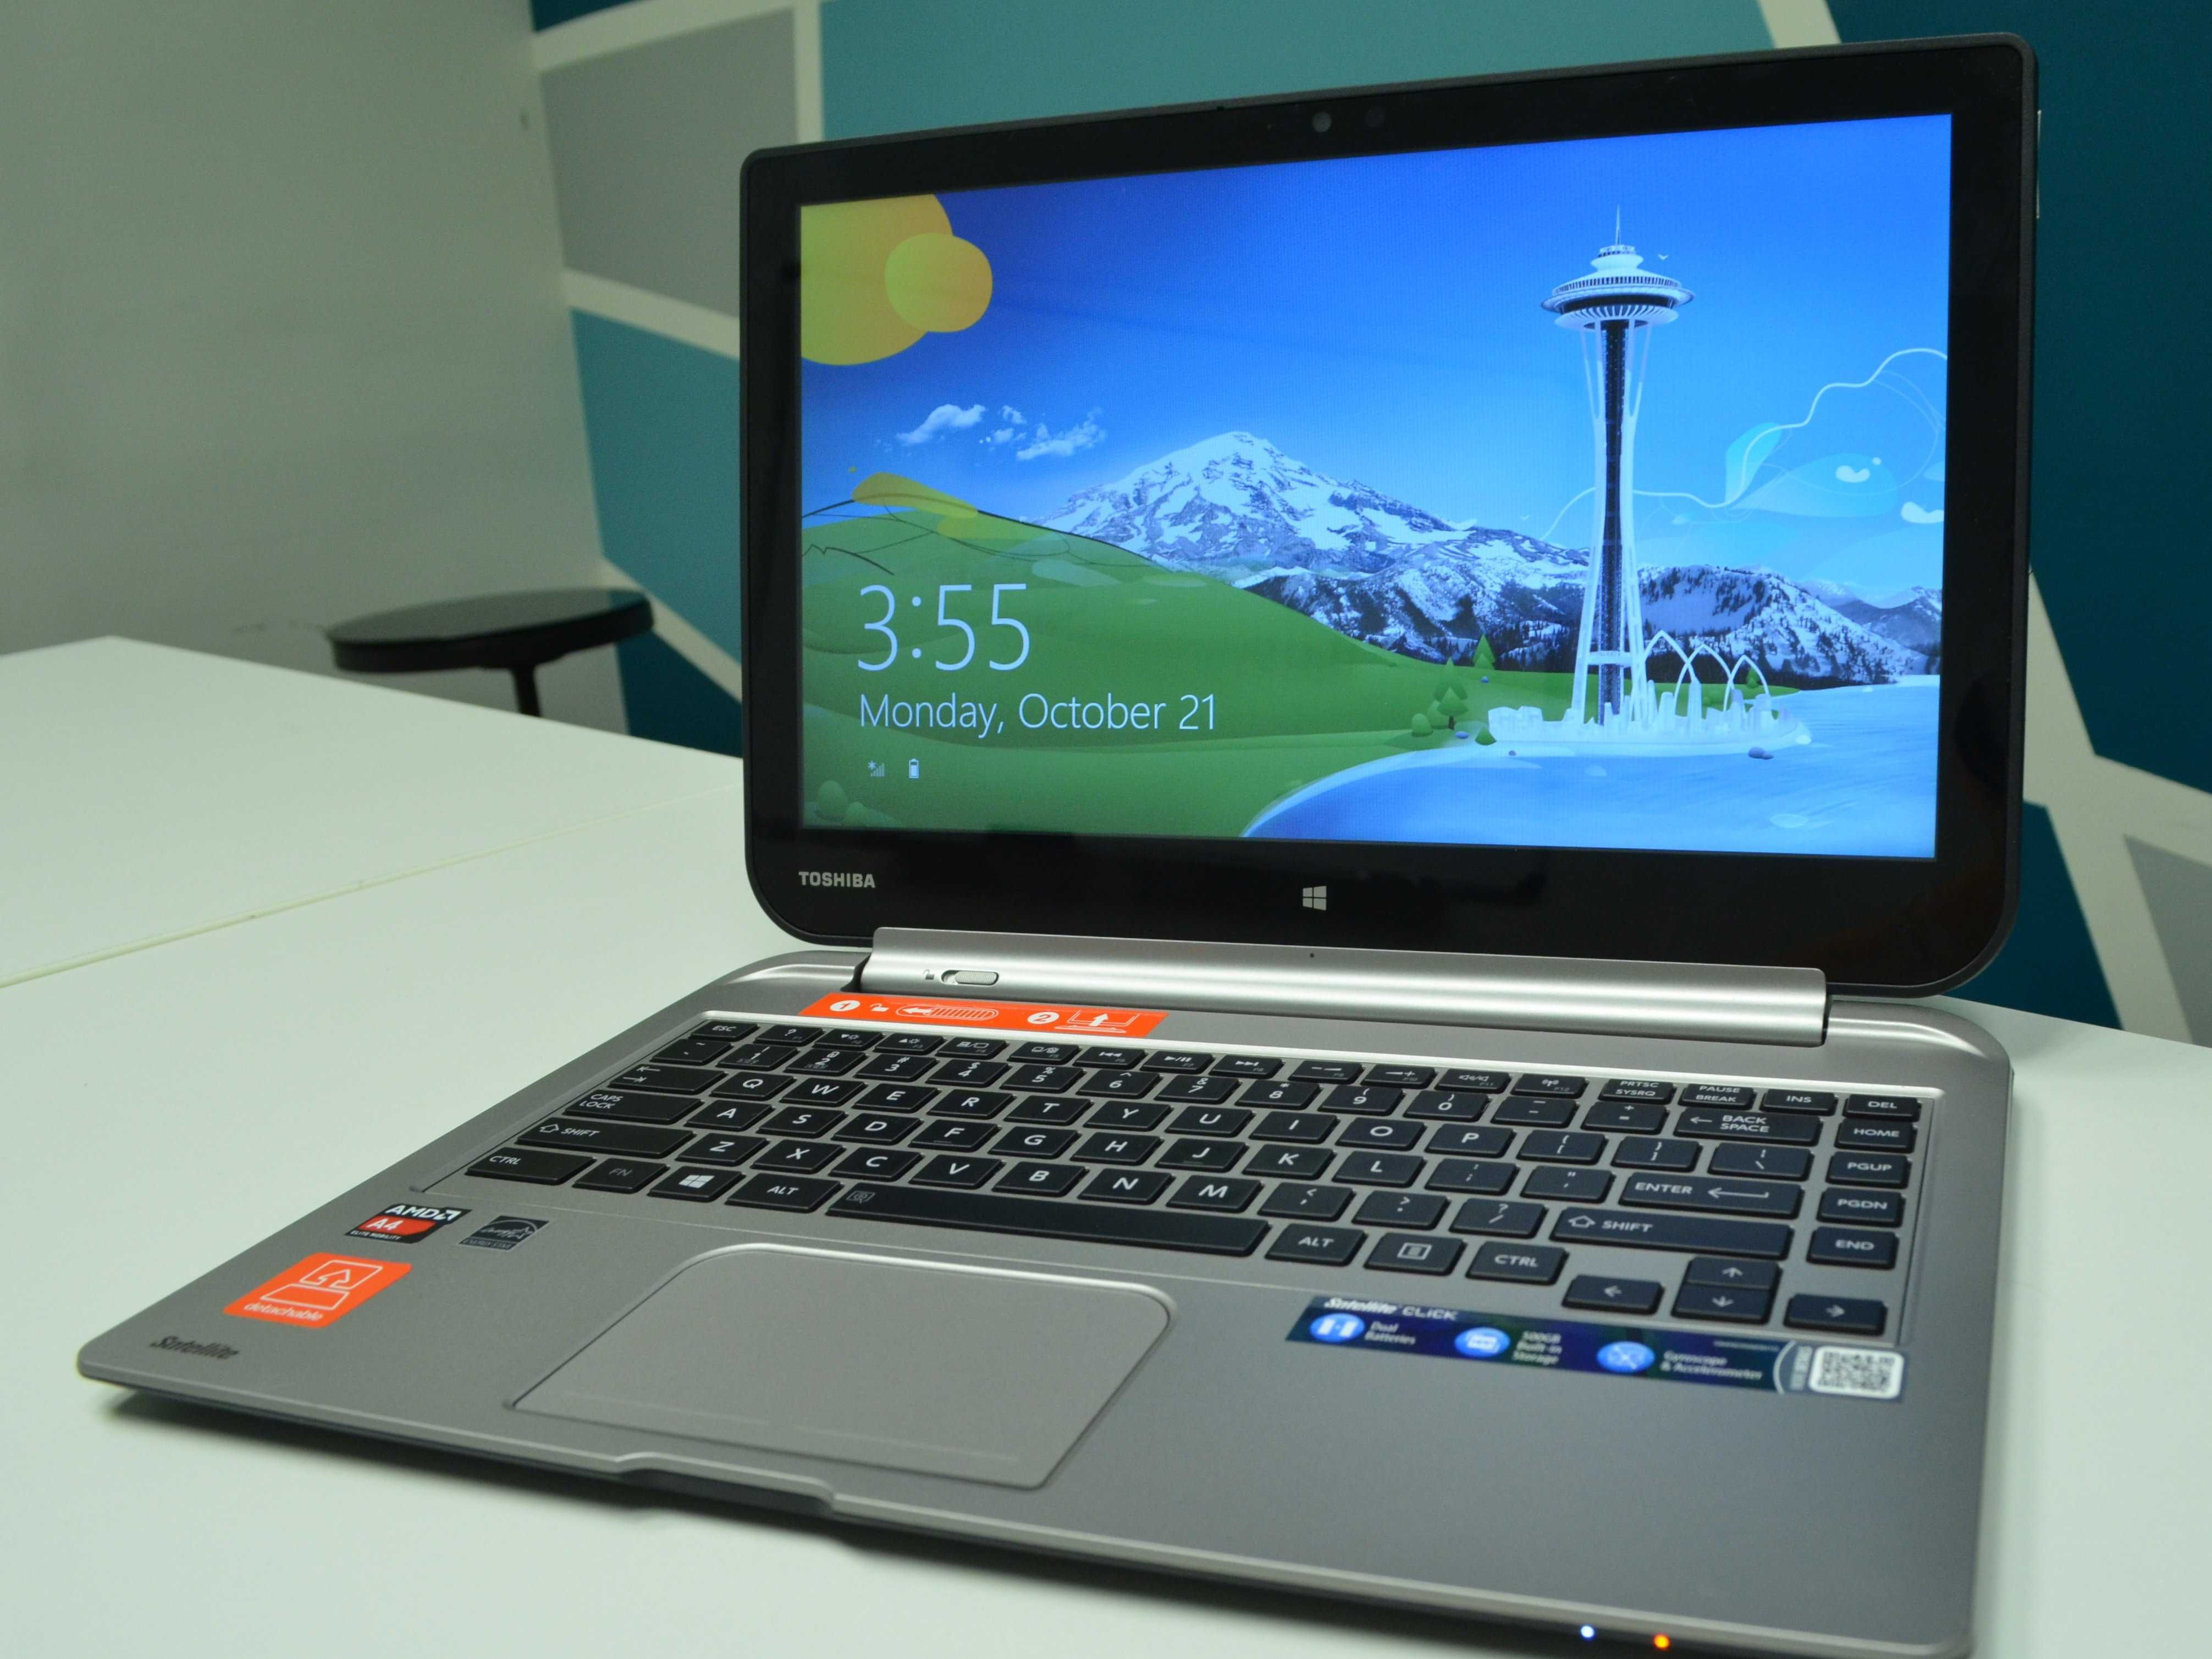 Find Latest Laptops Price List in India on 2014 February